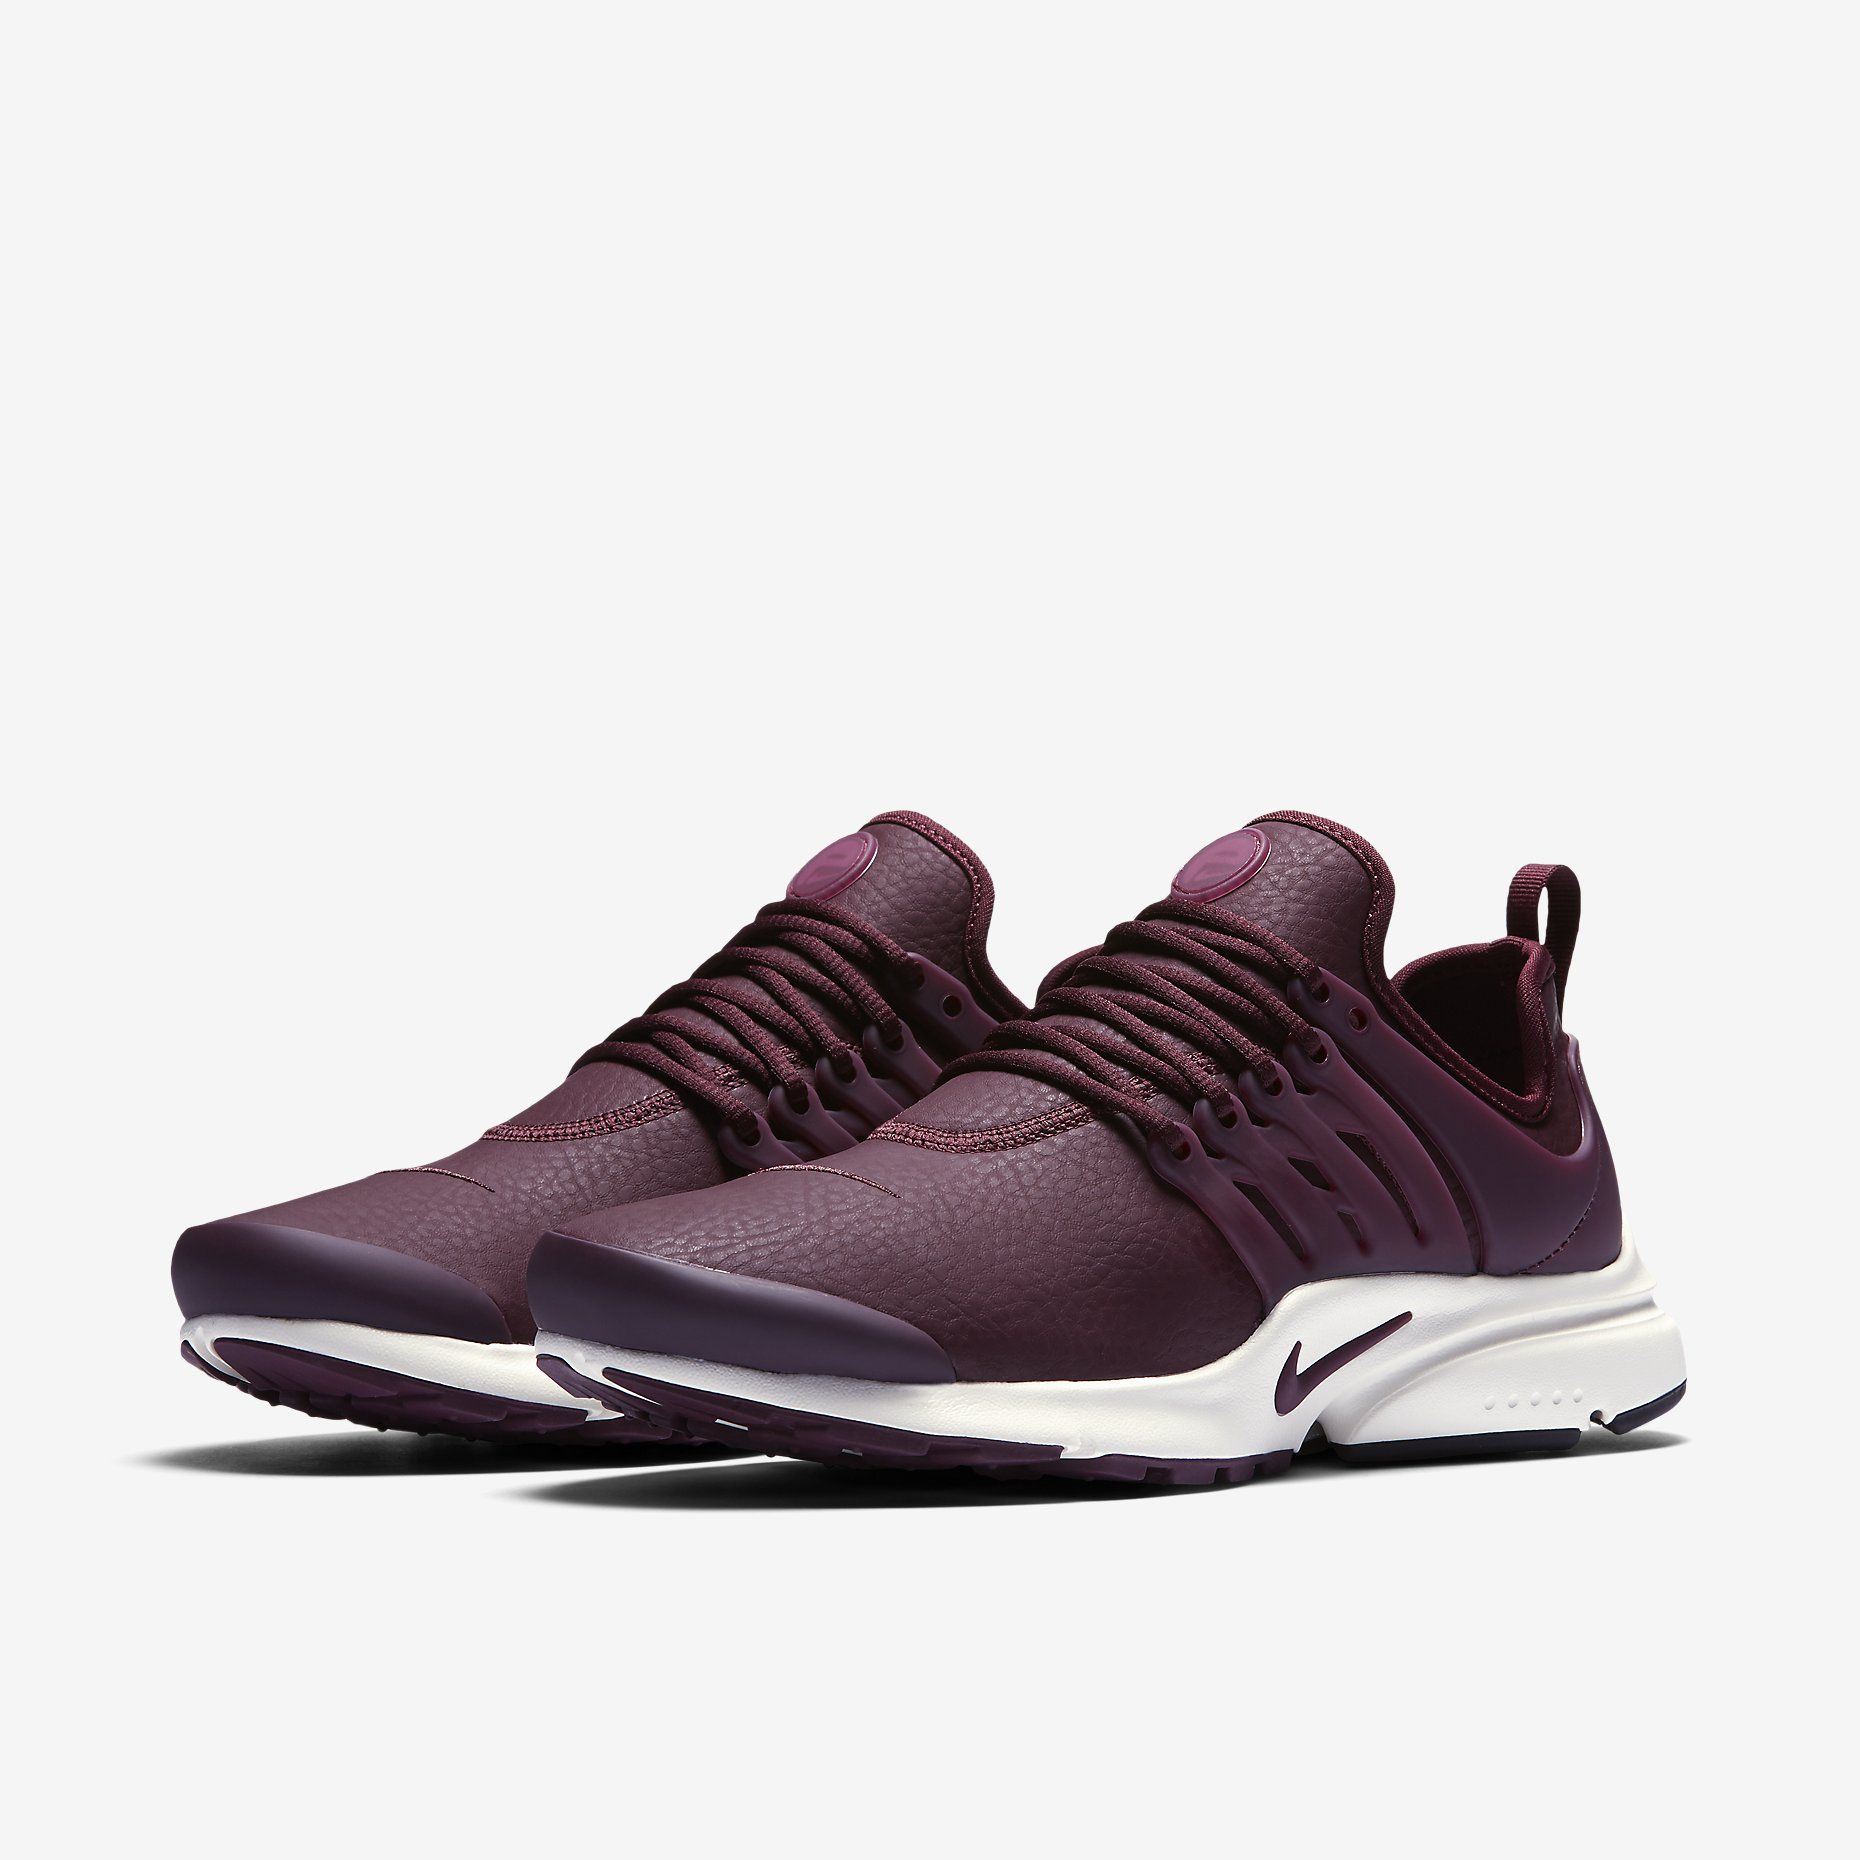 uk availability 625dc 33828 nike air presto   Fashion in 2019   Sneakers nike, Shoes, Adidas ...